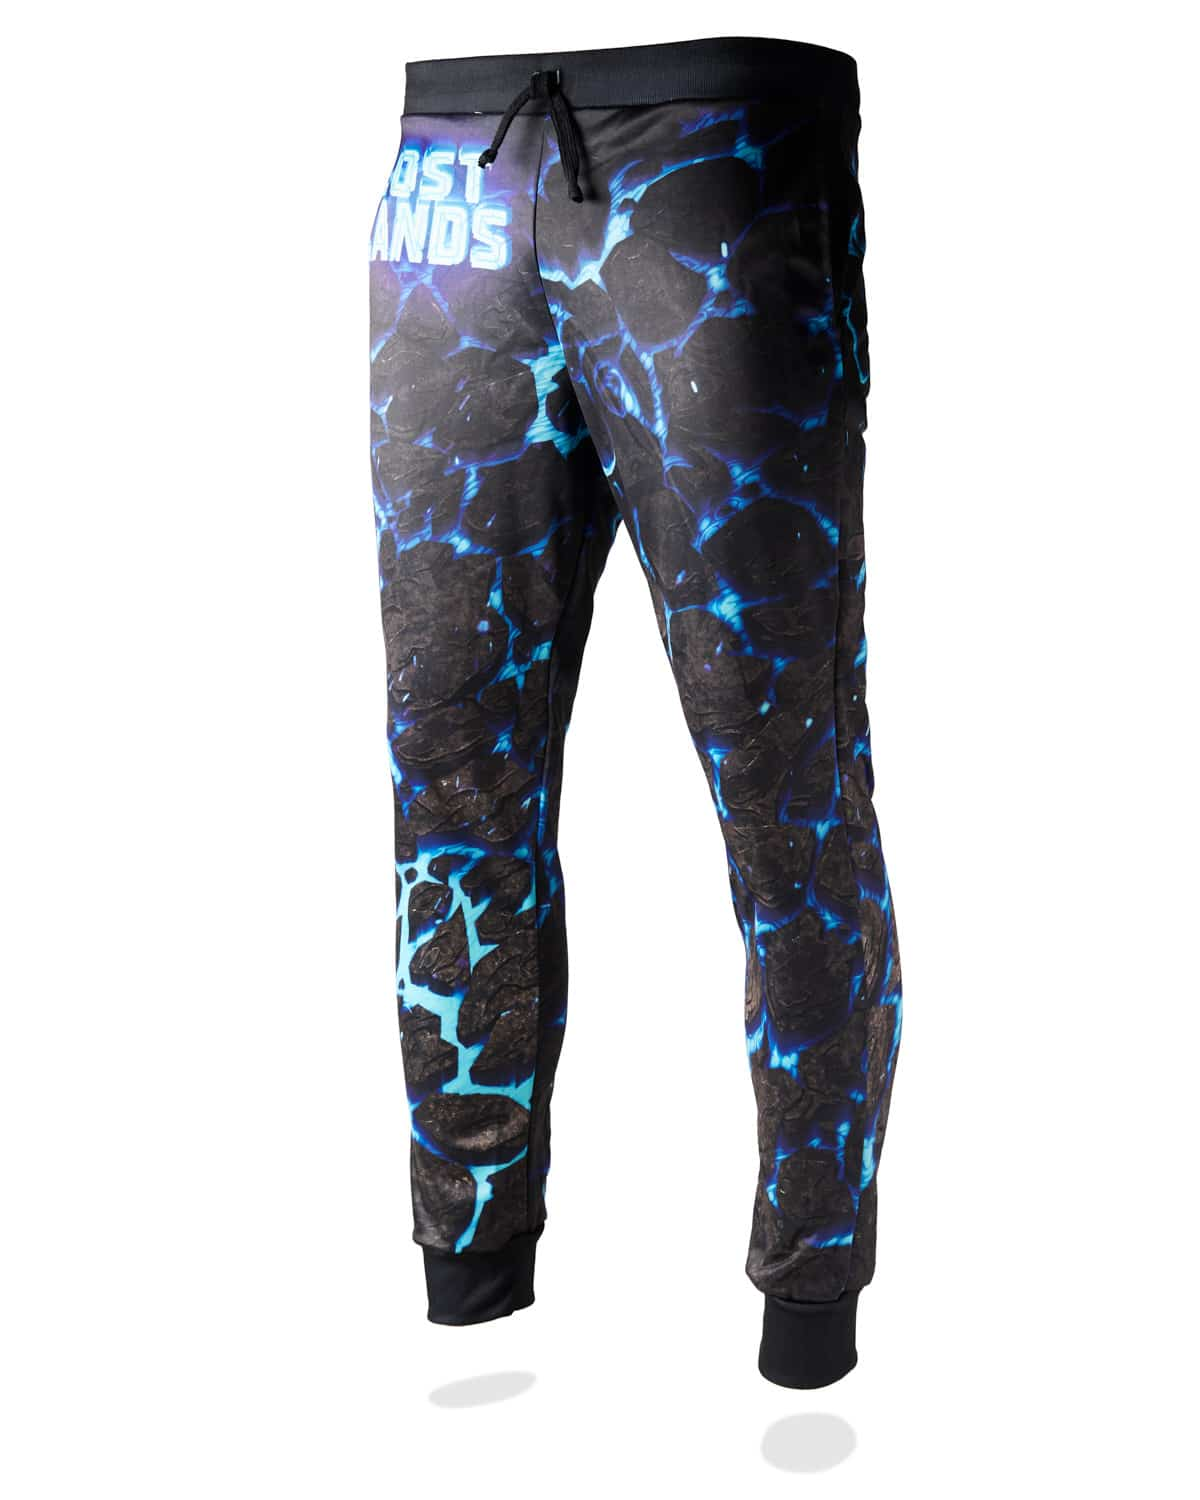 Lost Lands 'Magma' Jogger Sweatpants (Black/Blue)